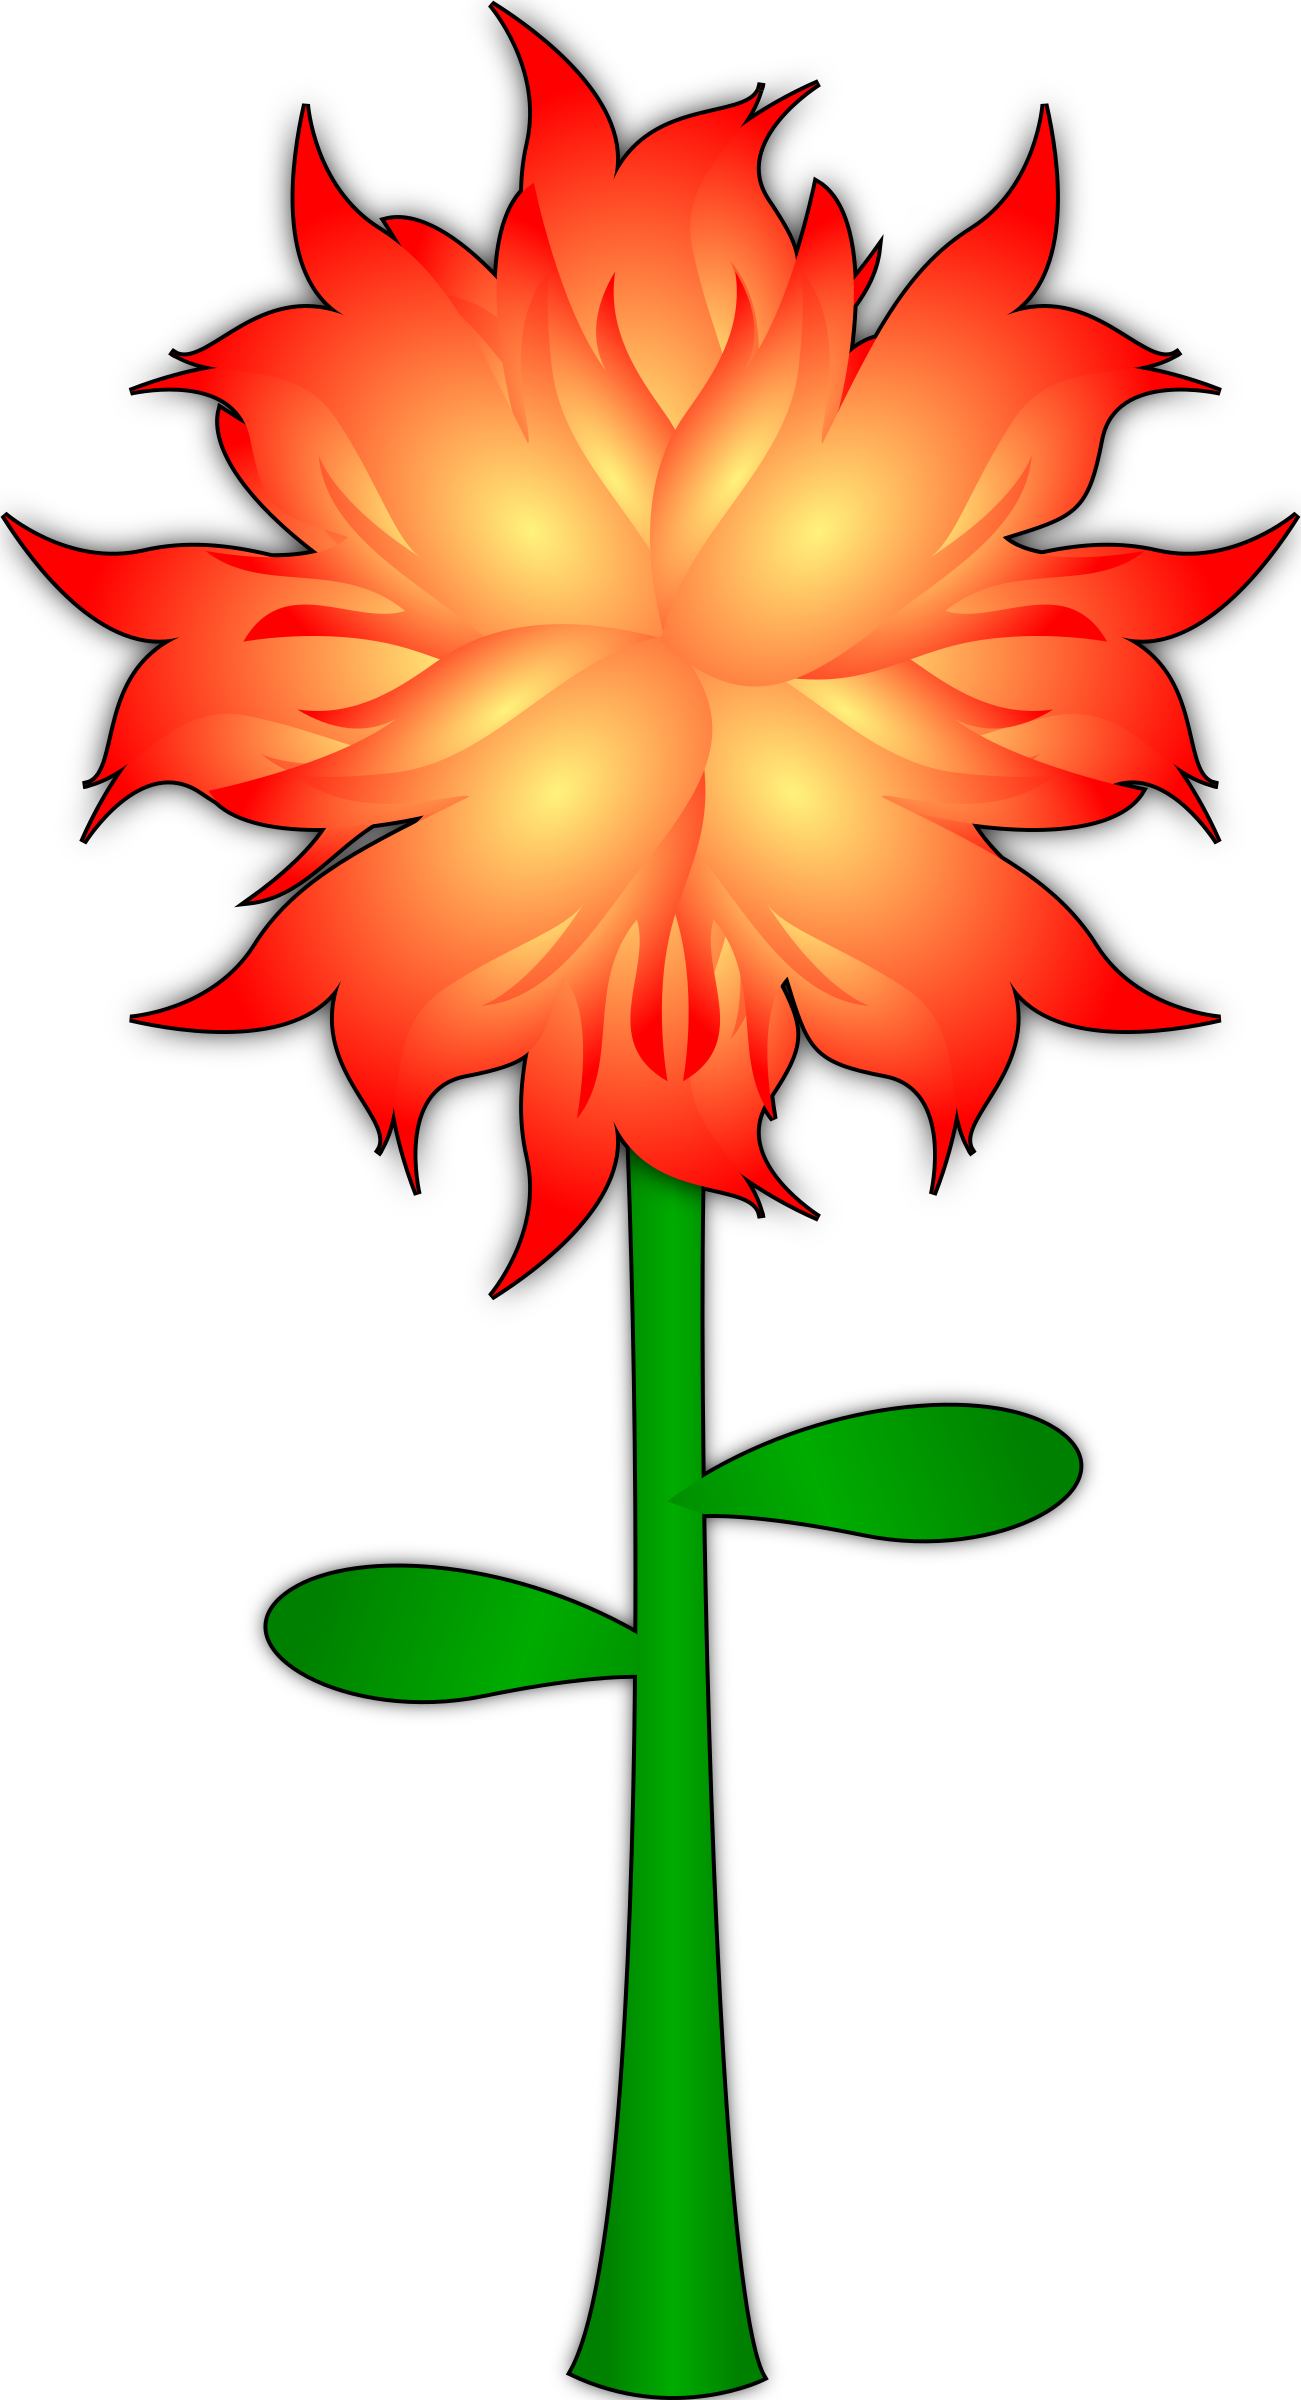 Fire Flower by gigatwo